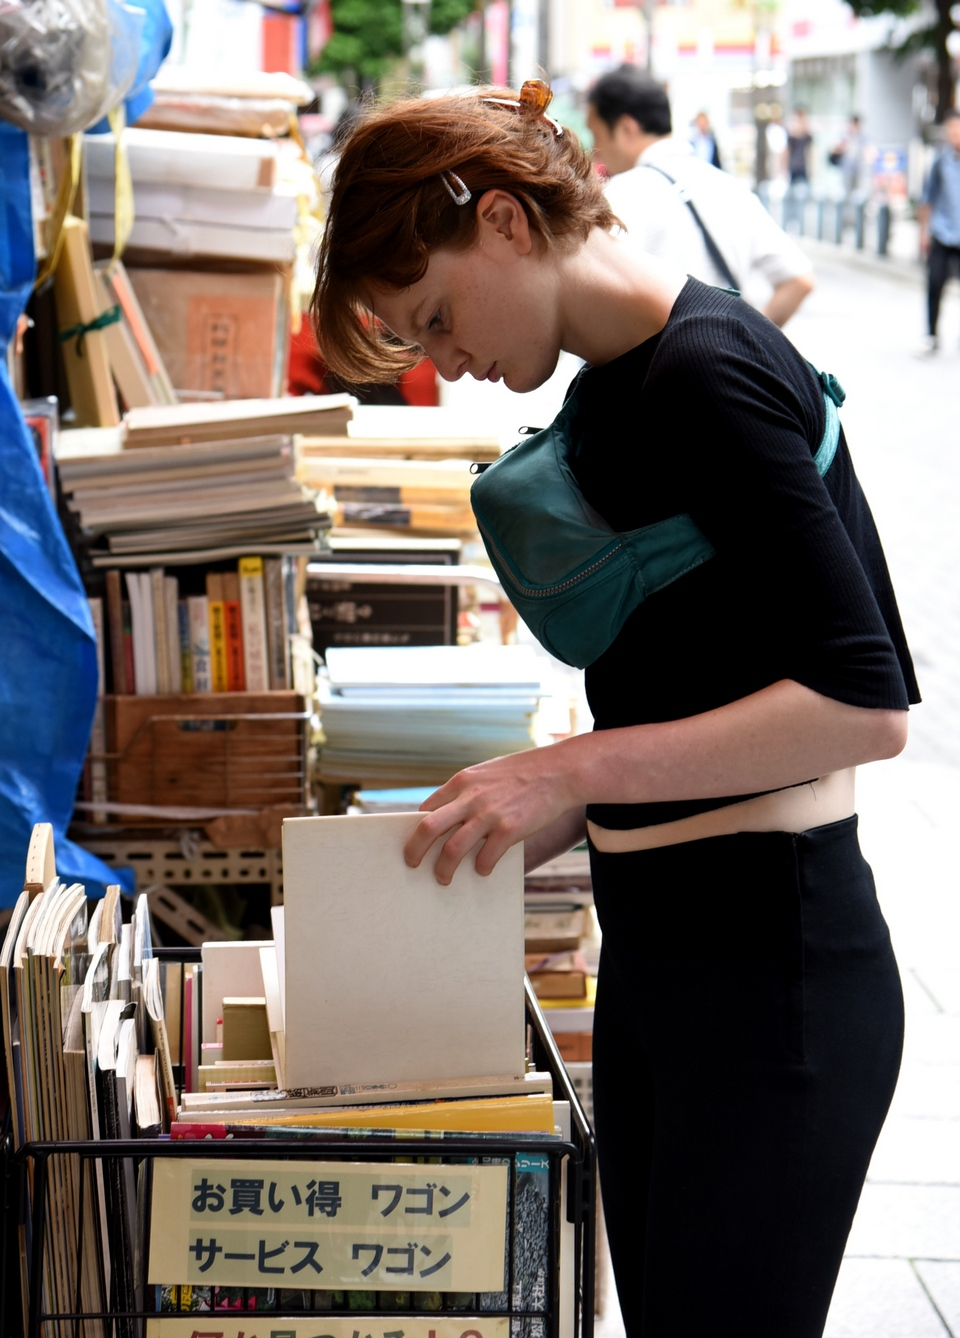 A shopper browses art books at a store selling used volumes in Tokyo's Jinbocho neighborhood.